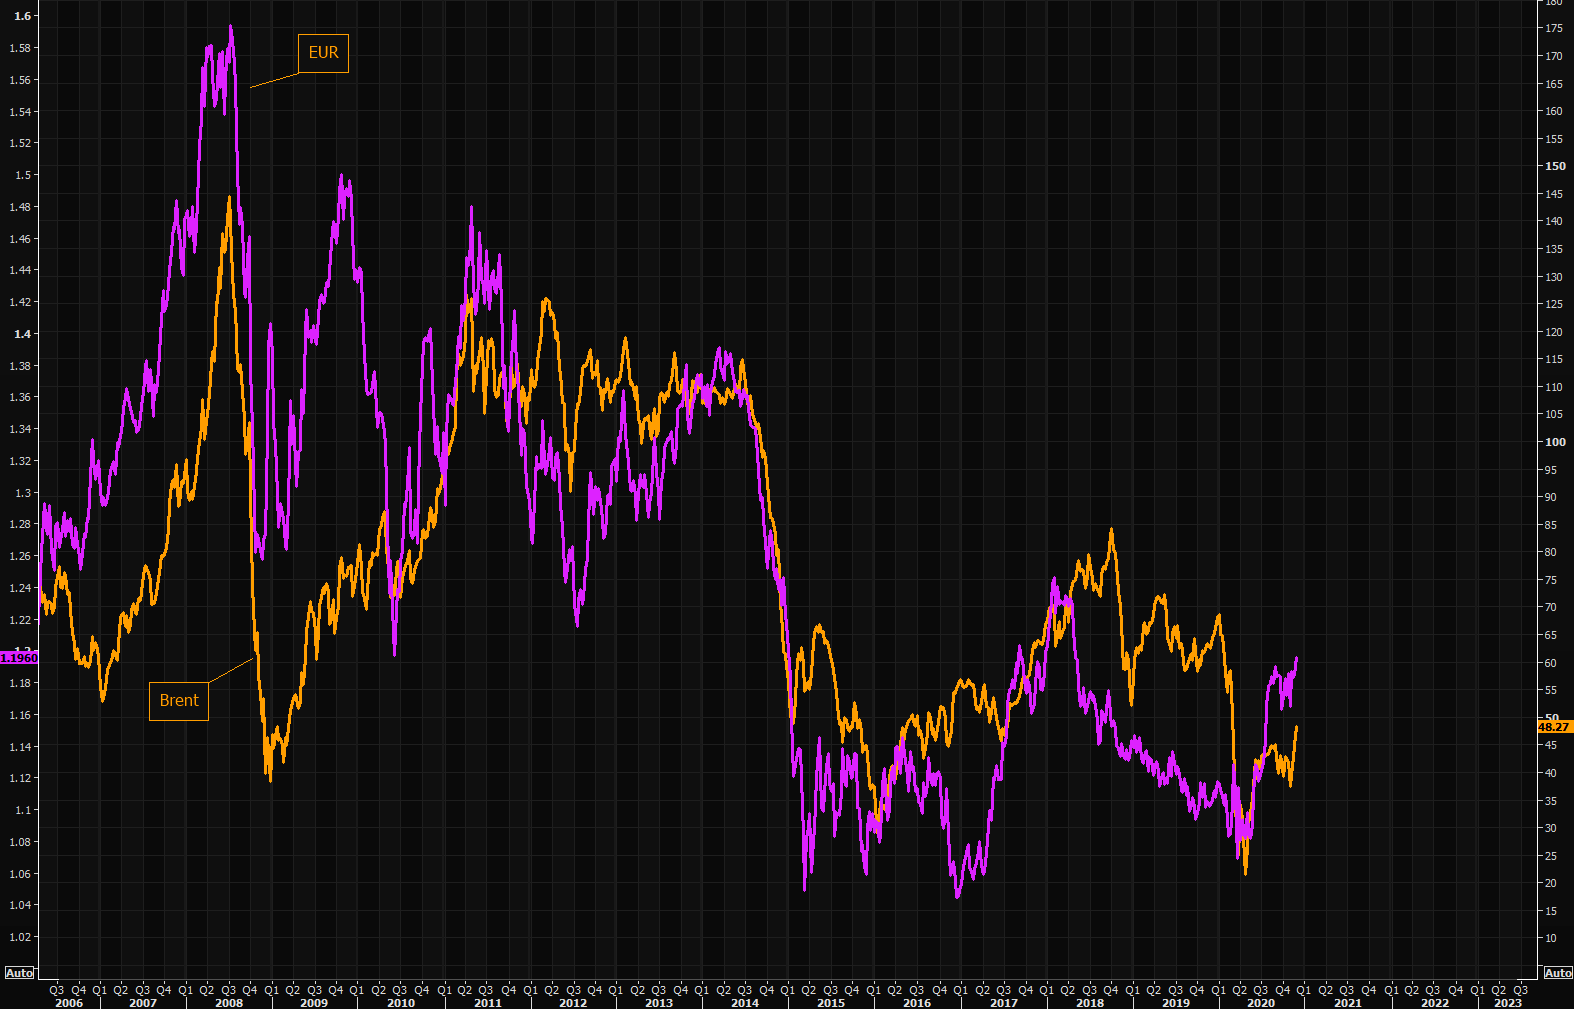 Oil and EURUSD love